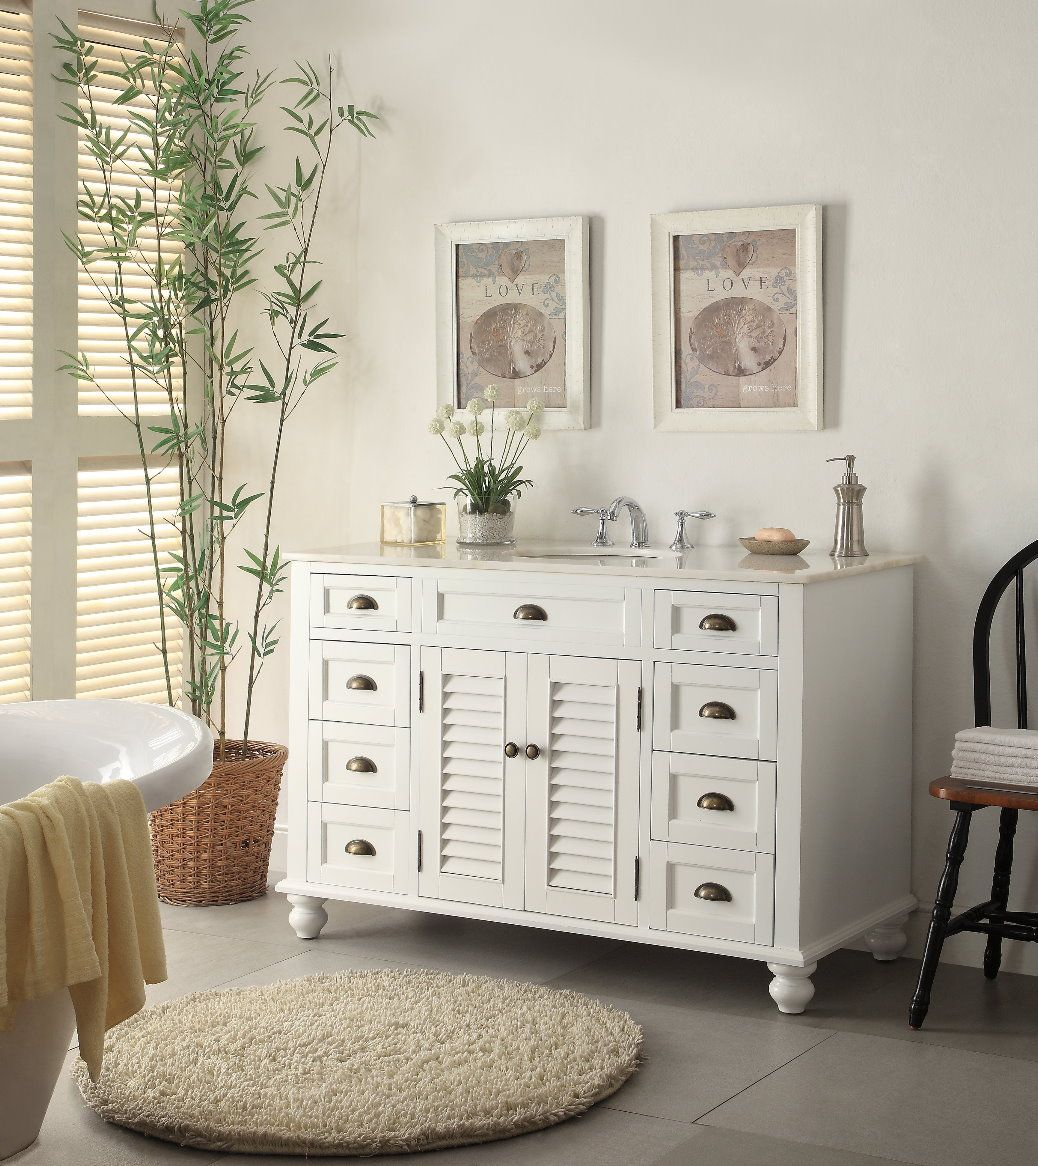 diy distressed bathroom vanity%0A The plantationinspired look of this cottagestyle sink cabinet will add  casual elegance    Antique Bathroom